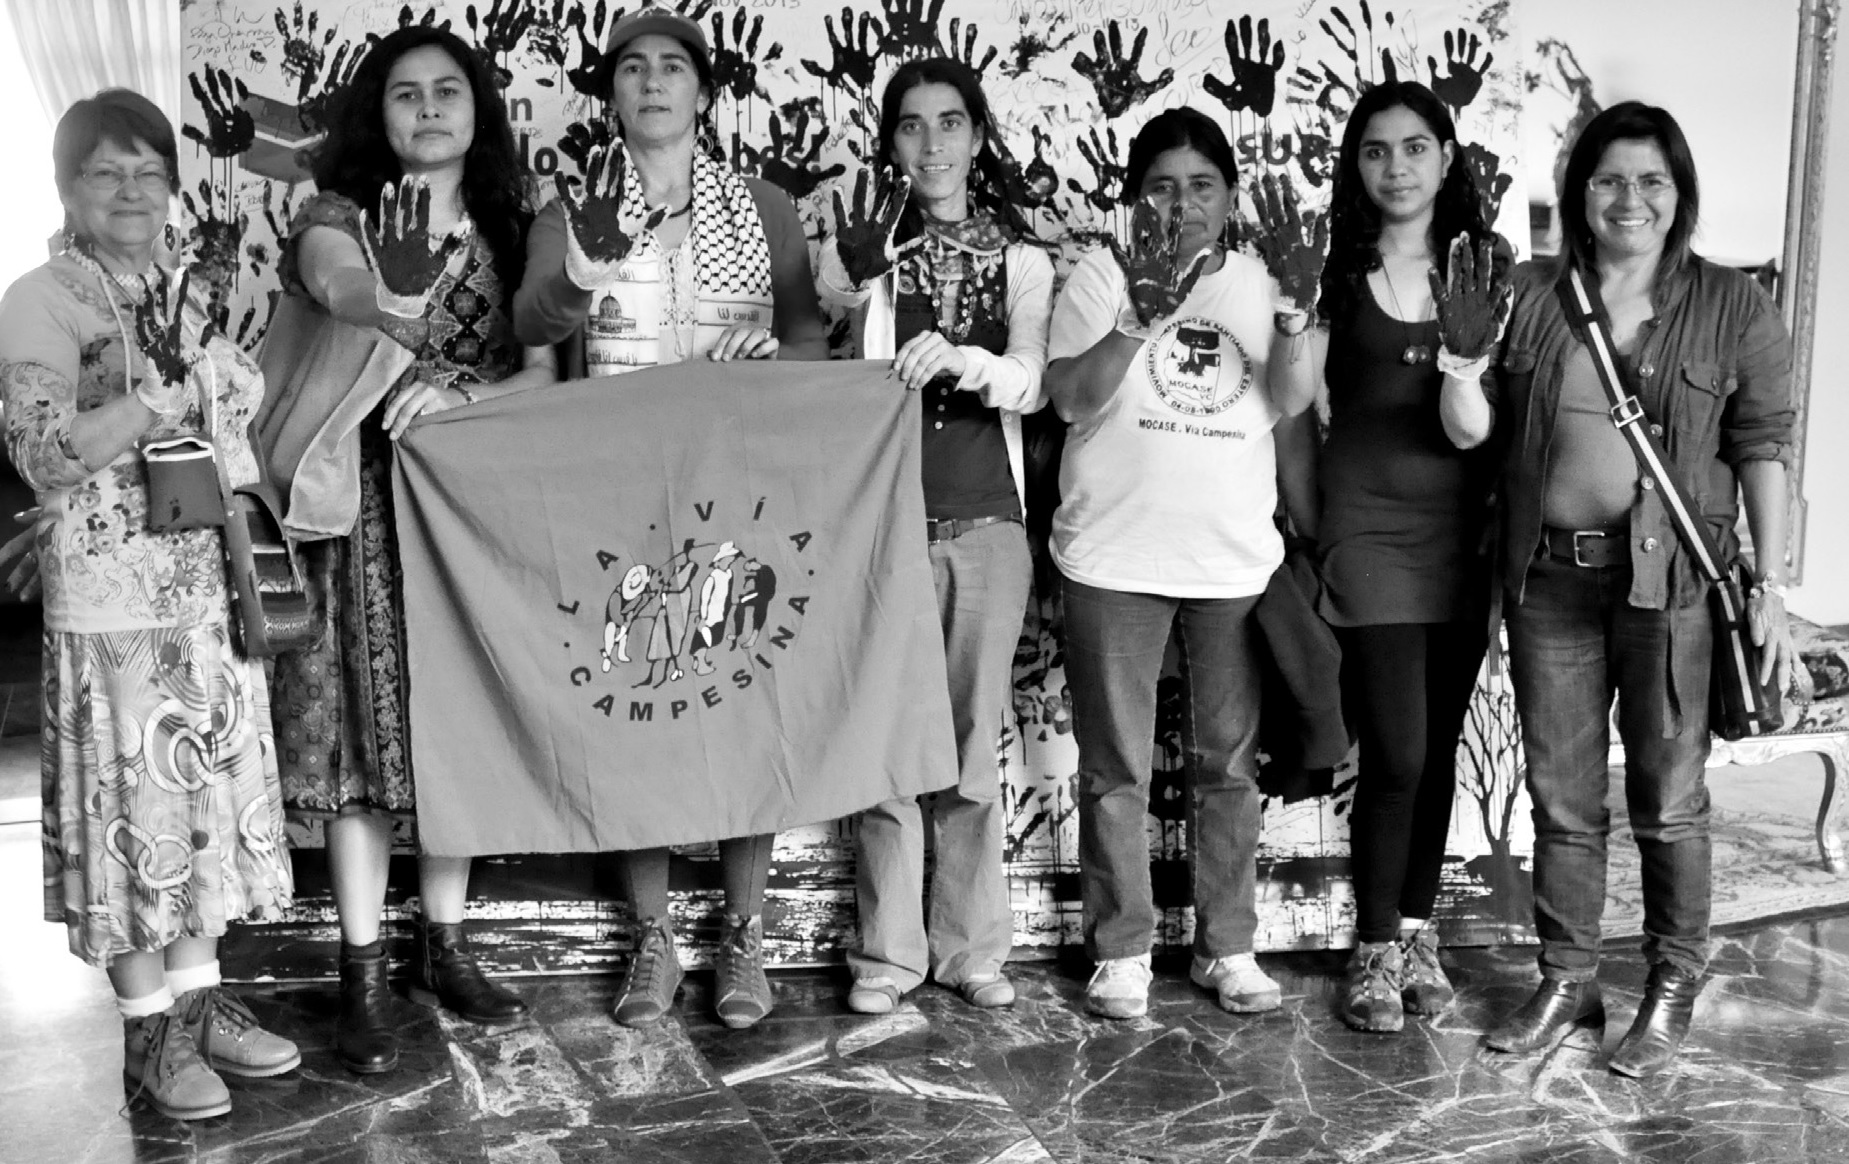 Photo of La Via Campesina women | Zinn Education Project